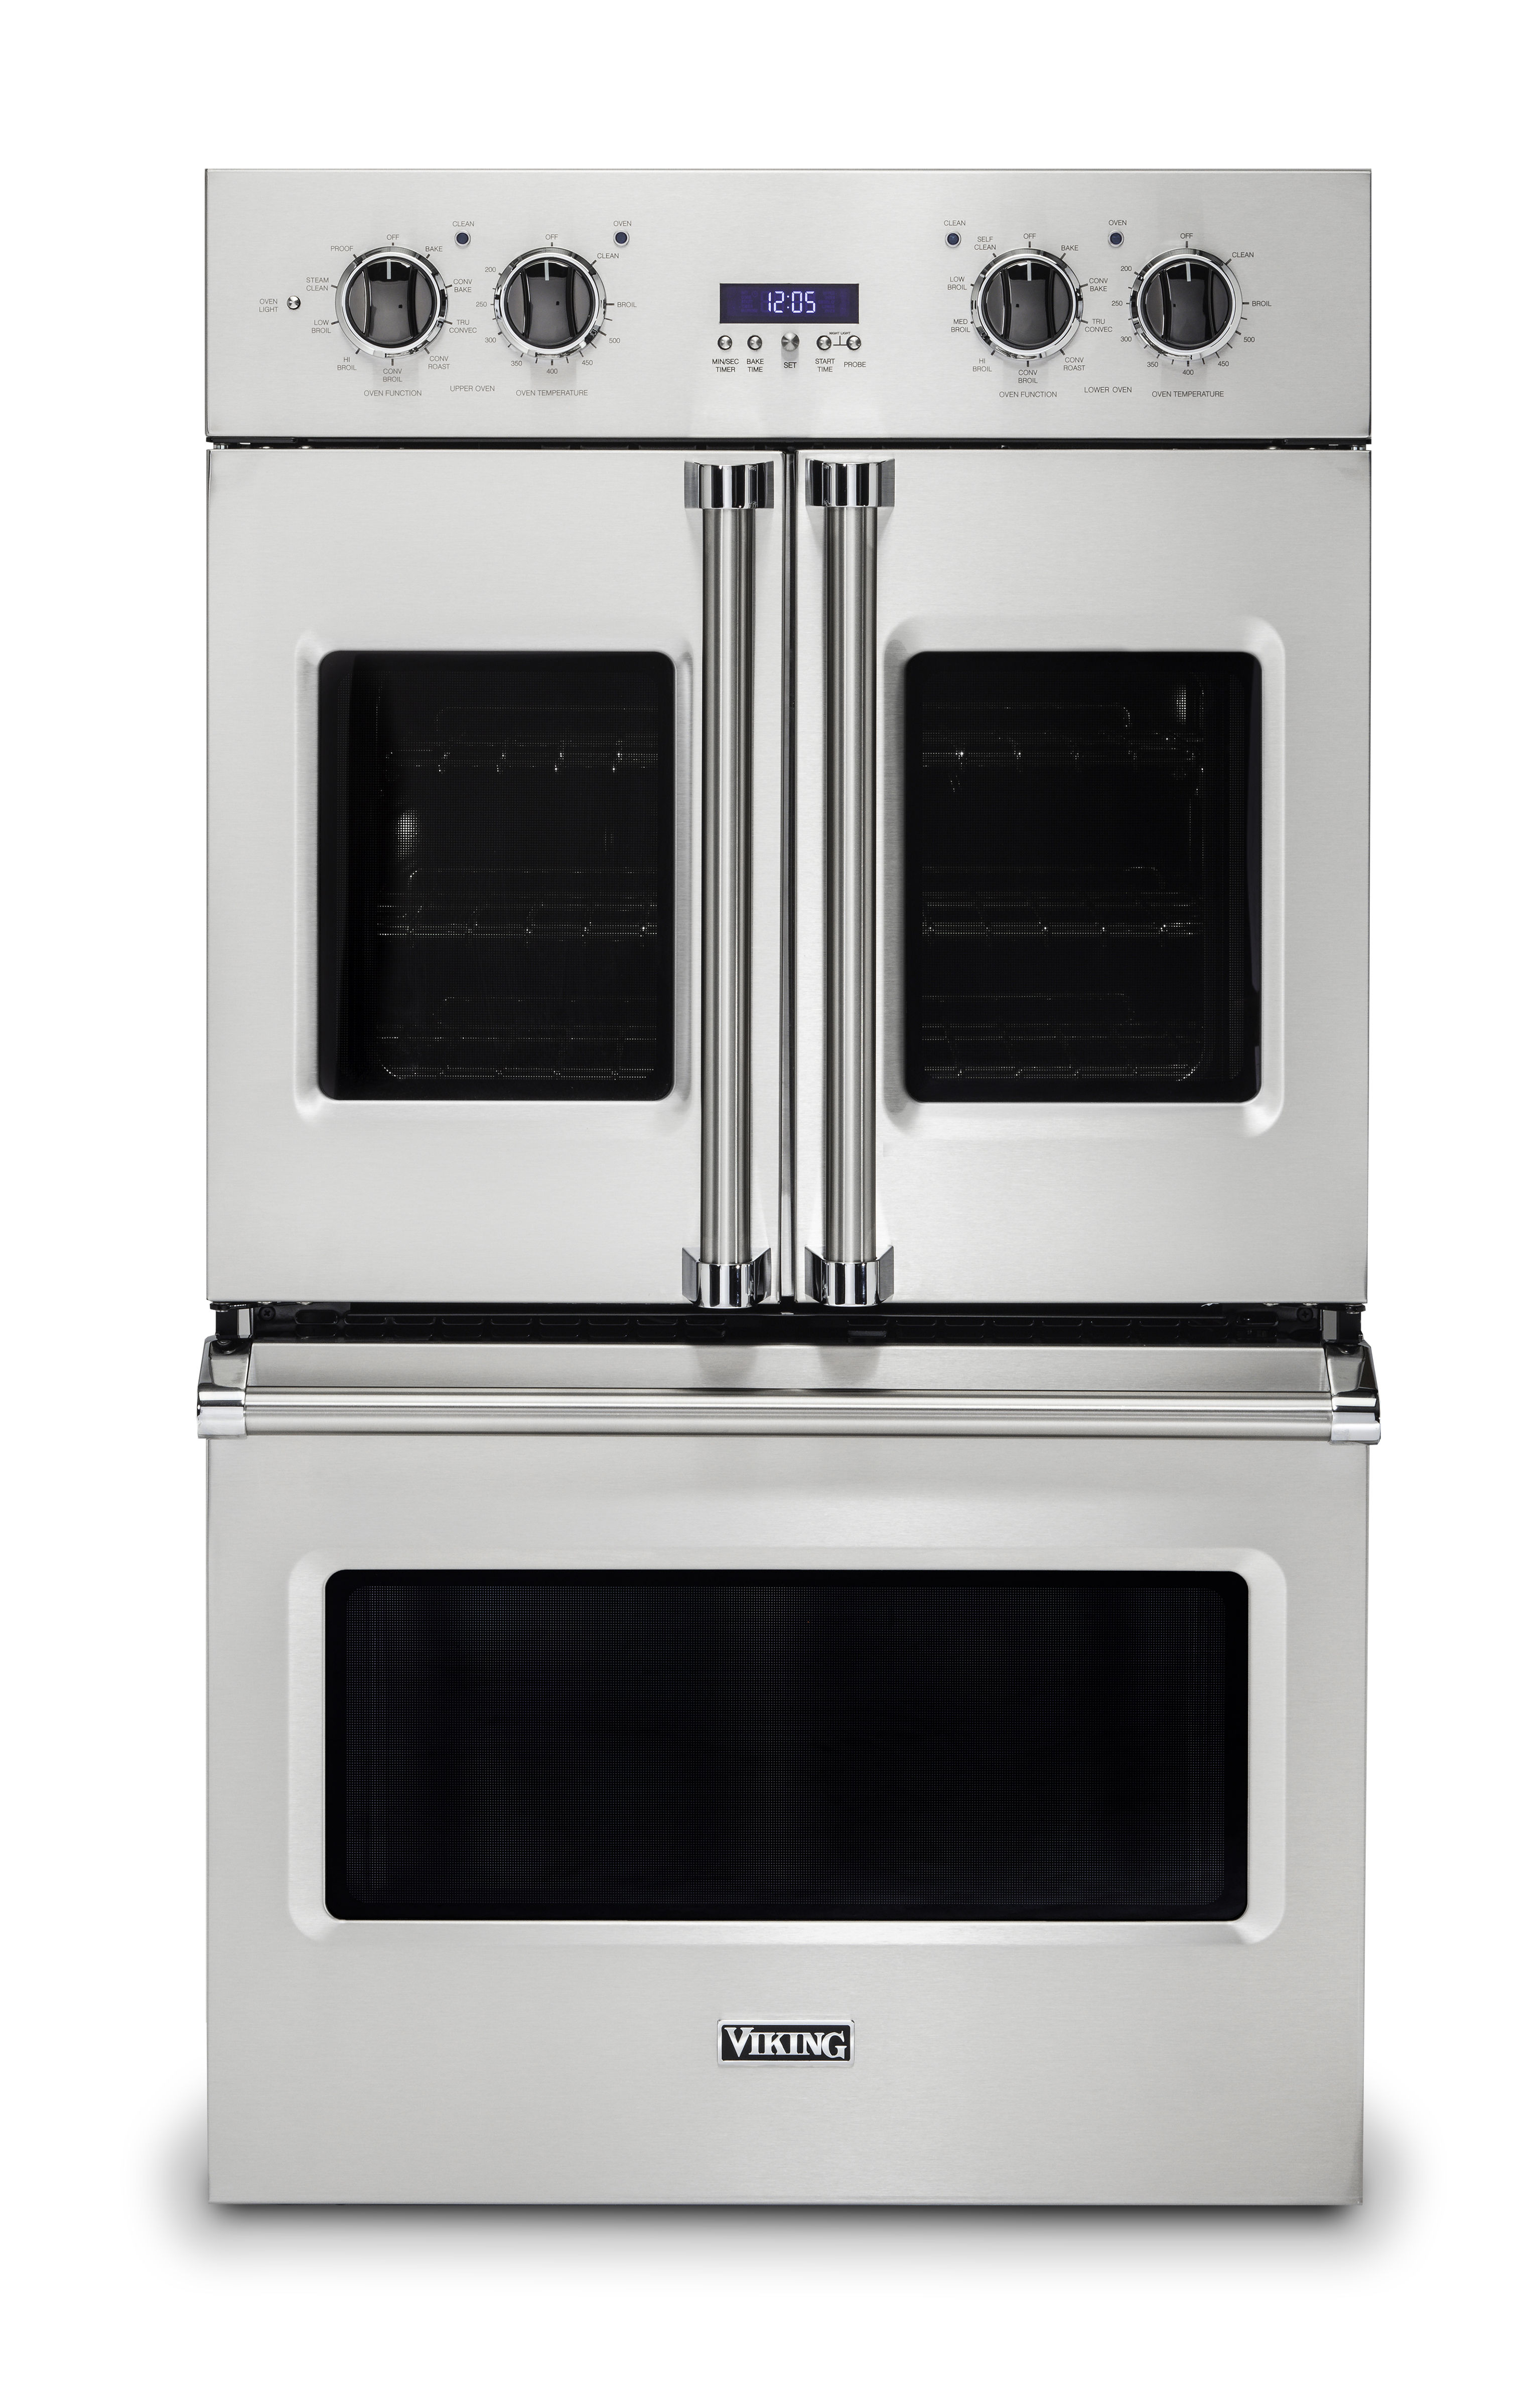 """Viking 30""""W. French-Door Double Built-In Electric Thermal Convection Oven-Stainless"""